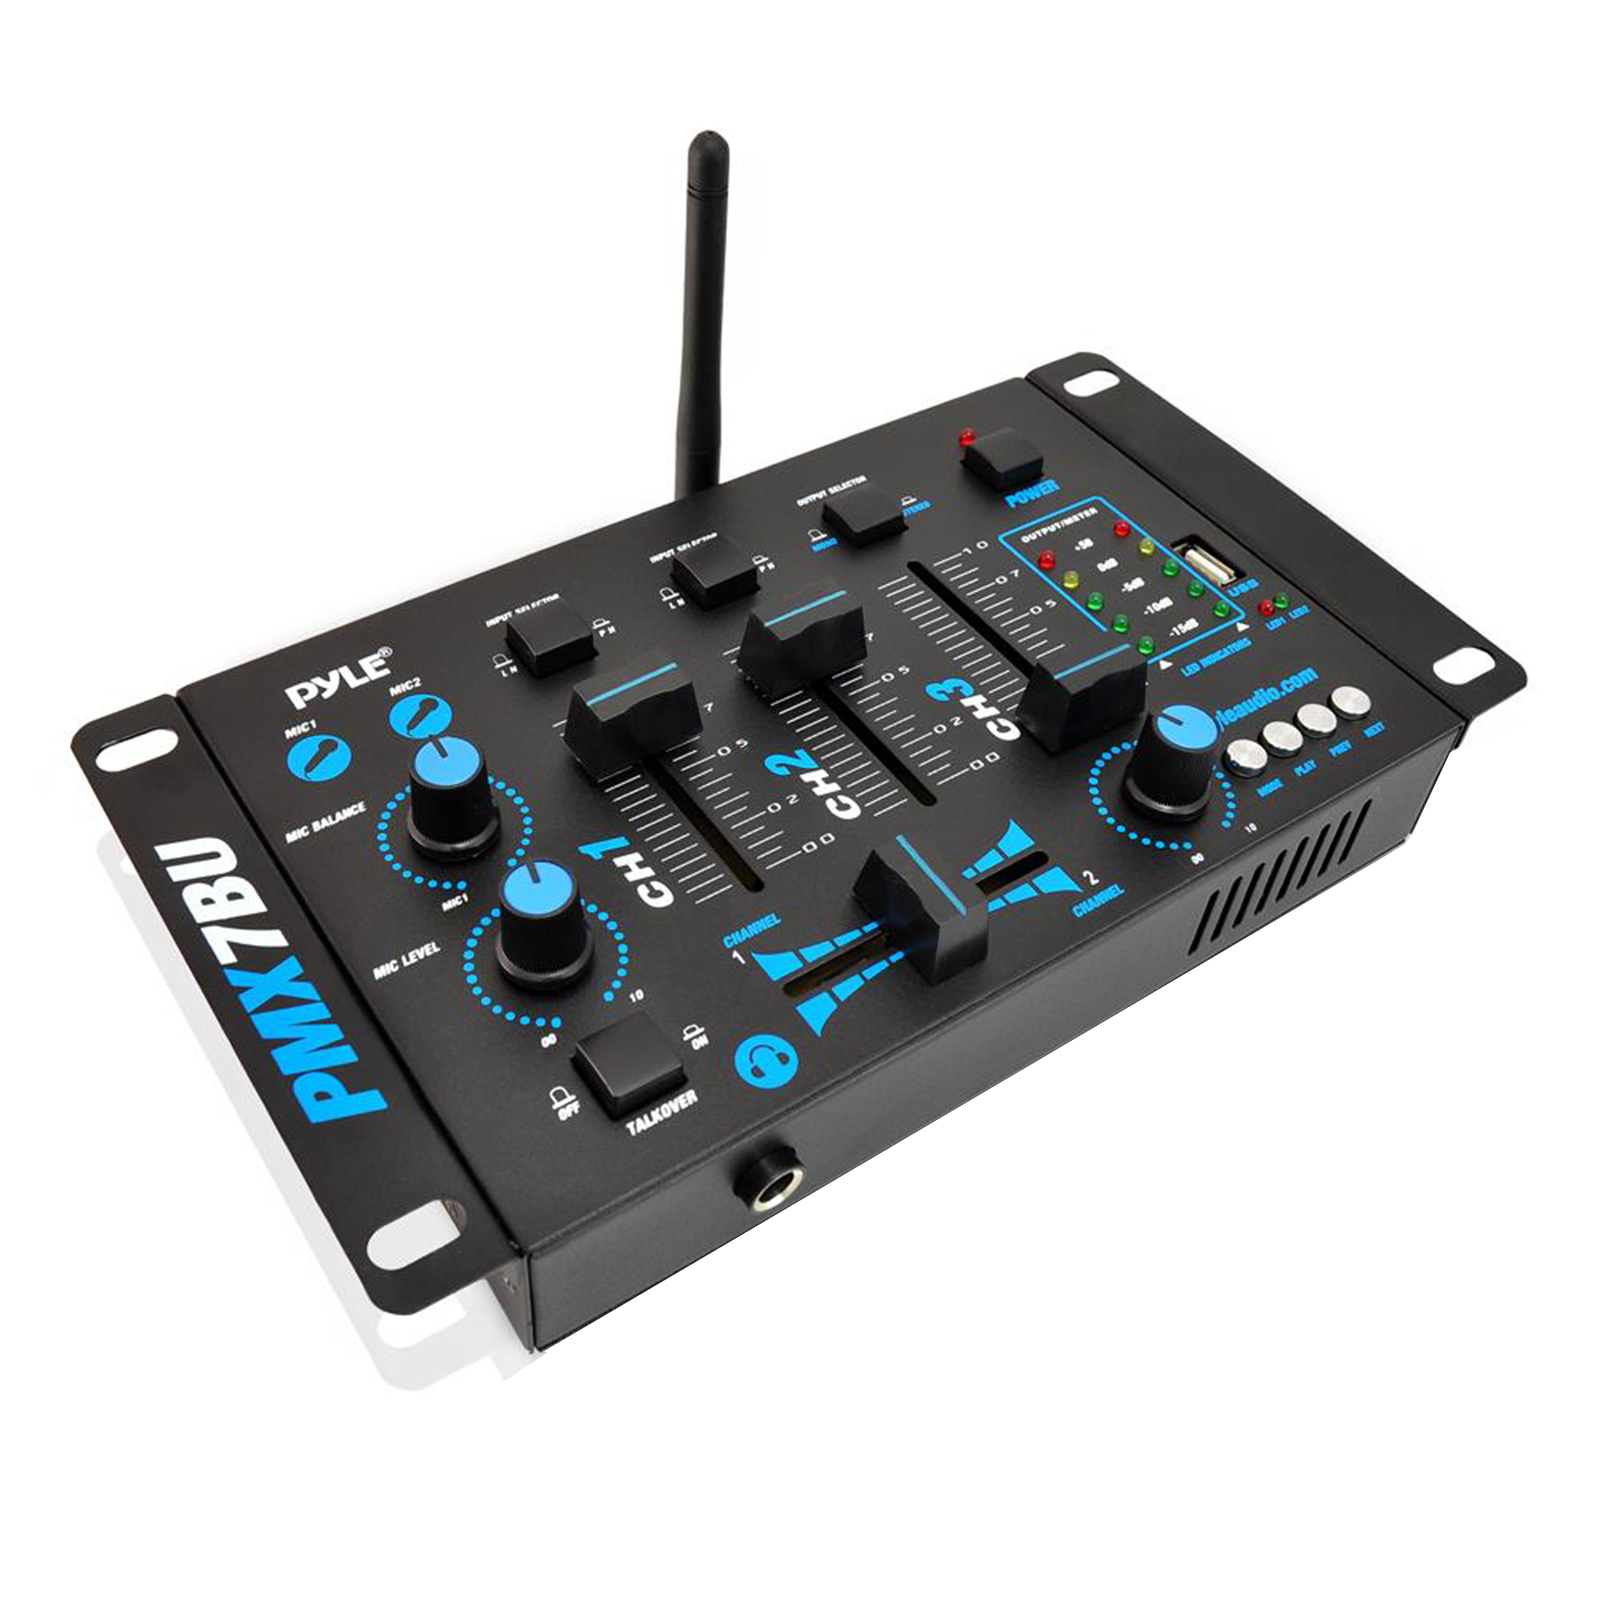 BT 3-Channel DJ MP3 Mixer, Mic-Talkover, USB Flash Reader, Dual RCA and Microphone Inputs, Headphone Jack